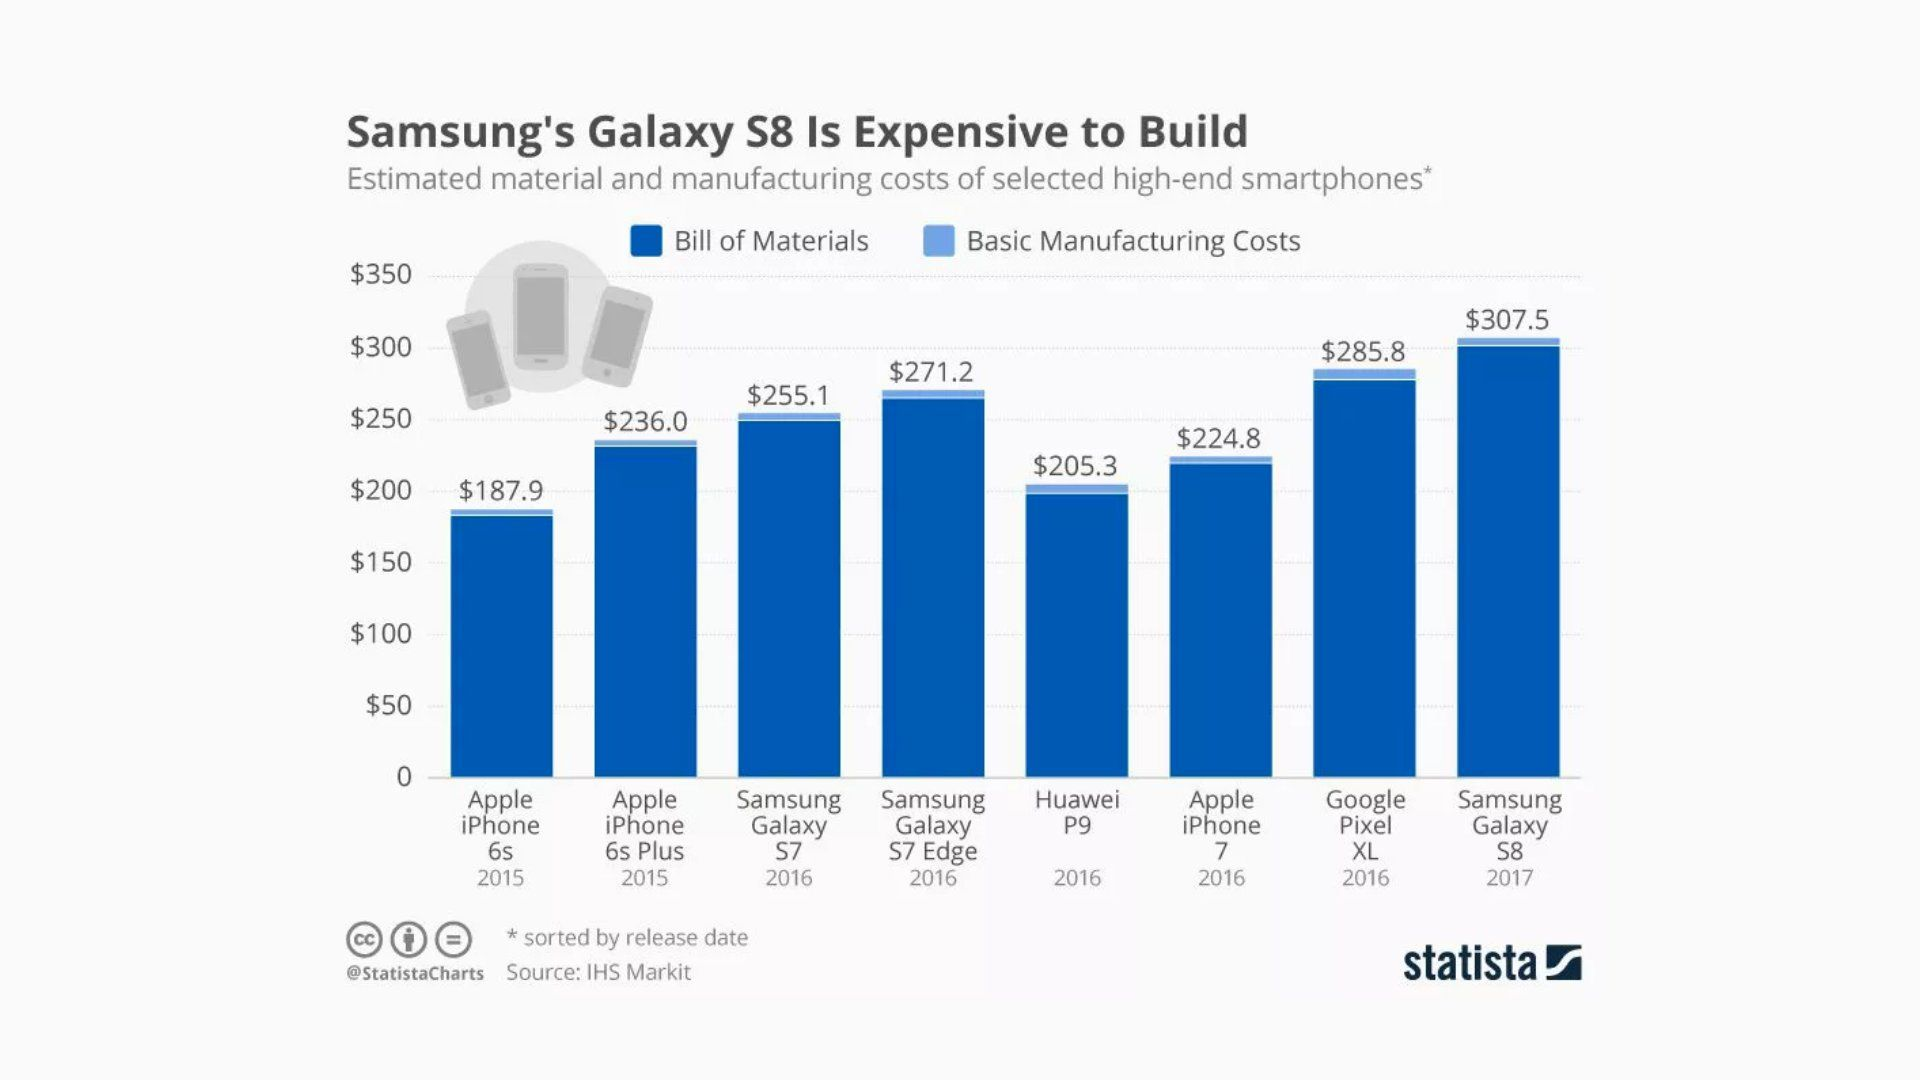 Samsung Galaxy S8 - Manufacturing Cost